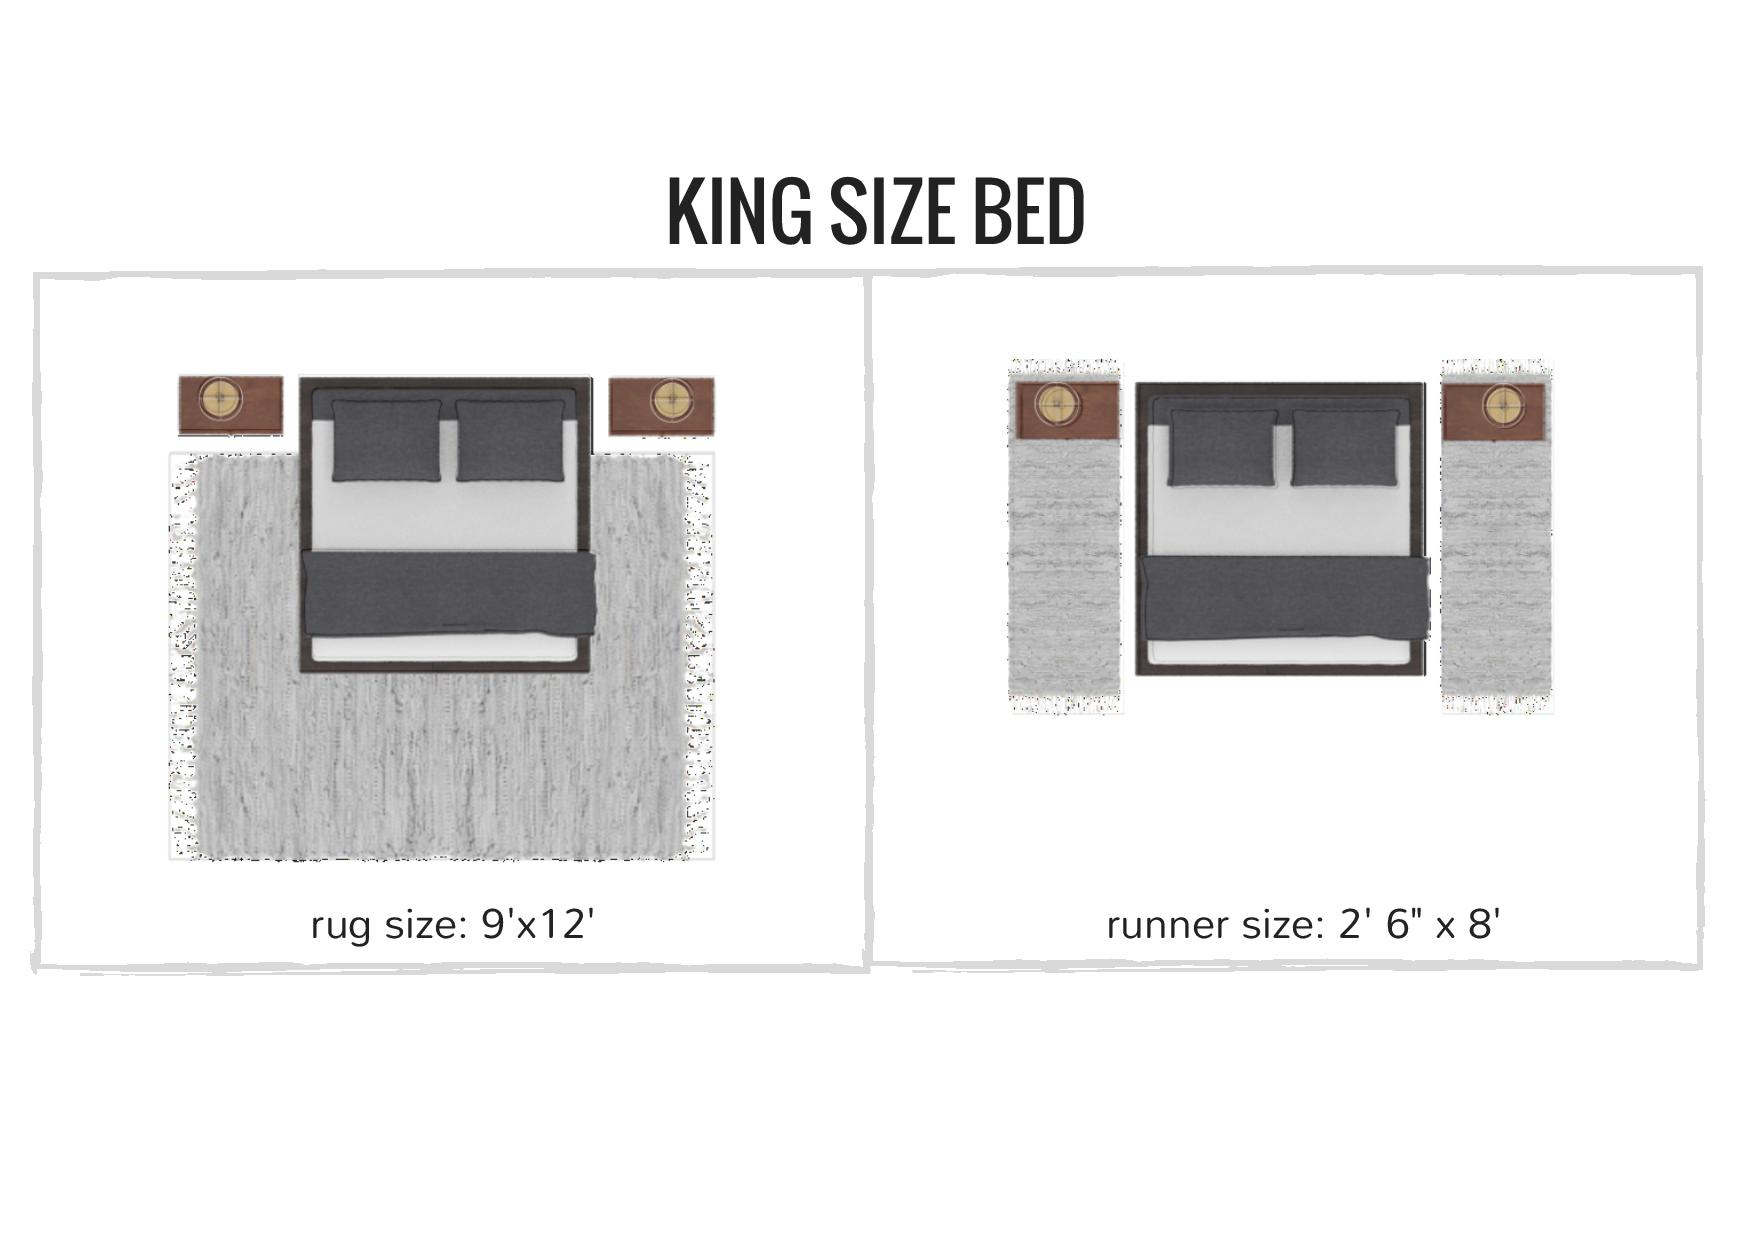 rug sizing and placement guide - what size rug do you need for your king size bed / bedroom